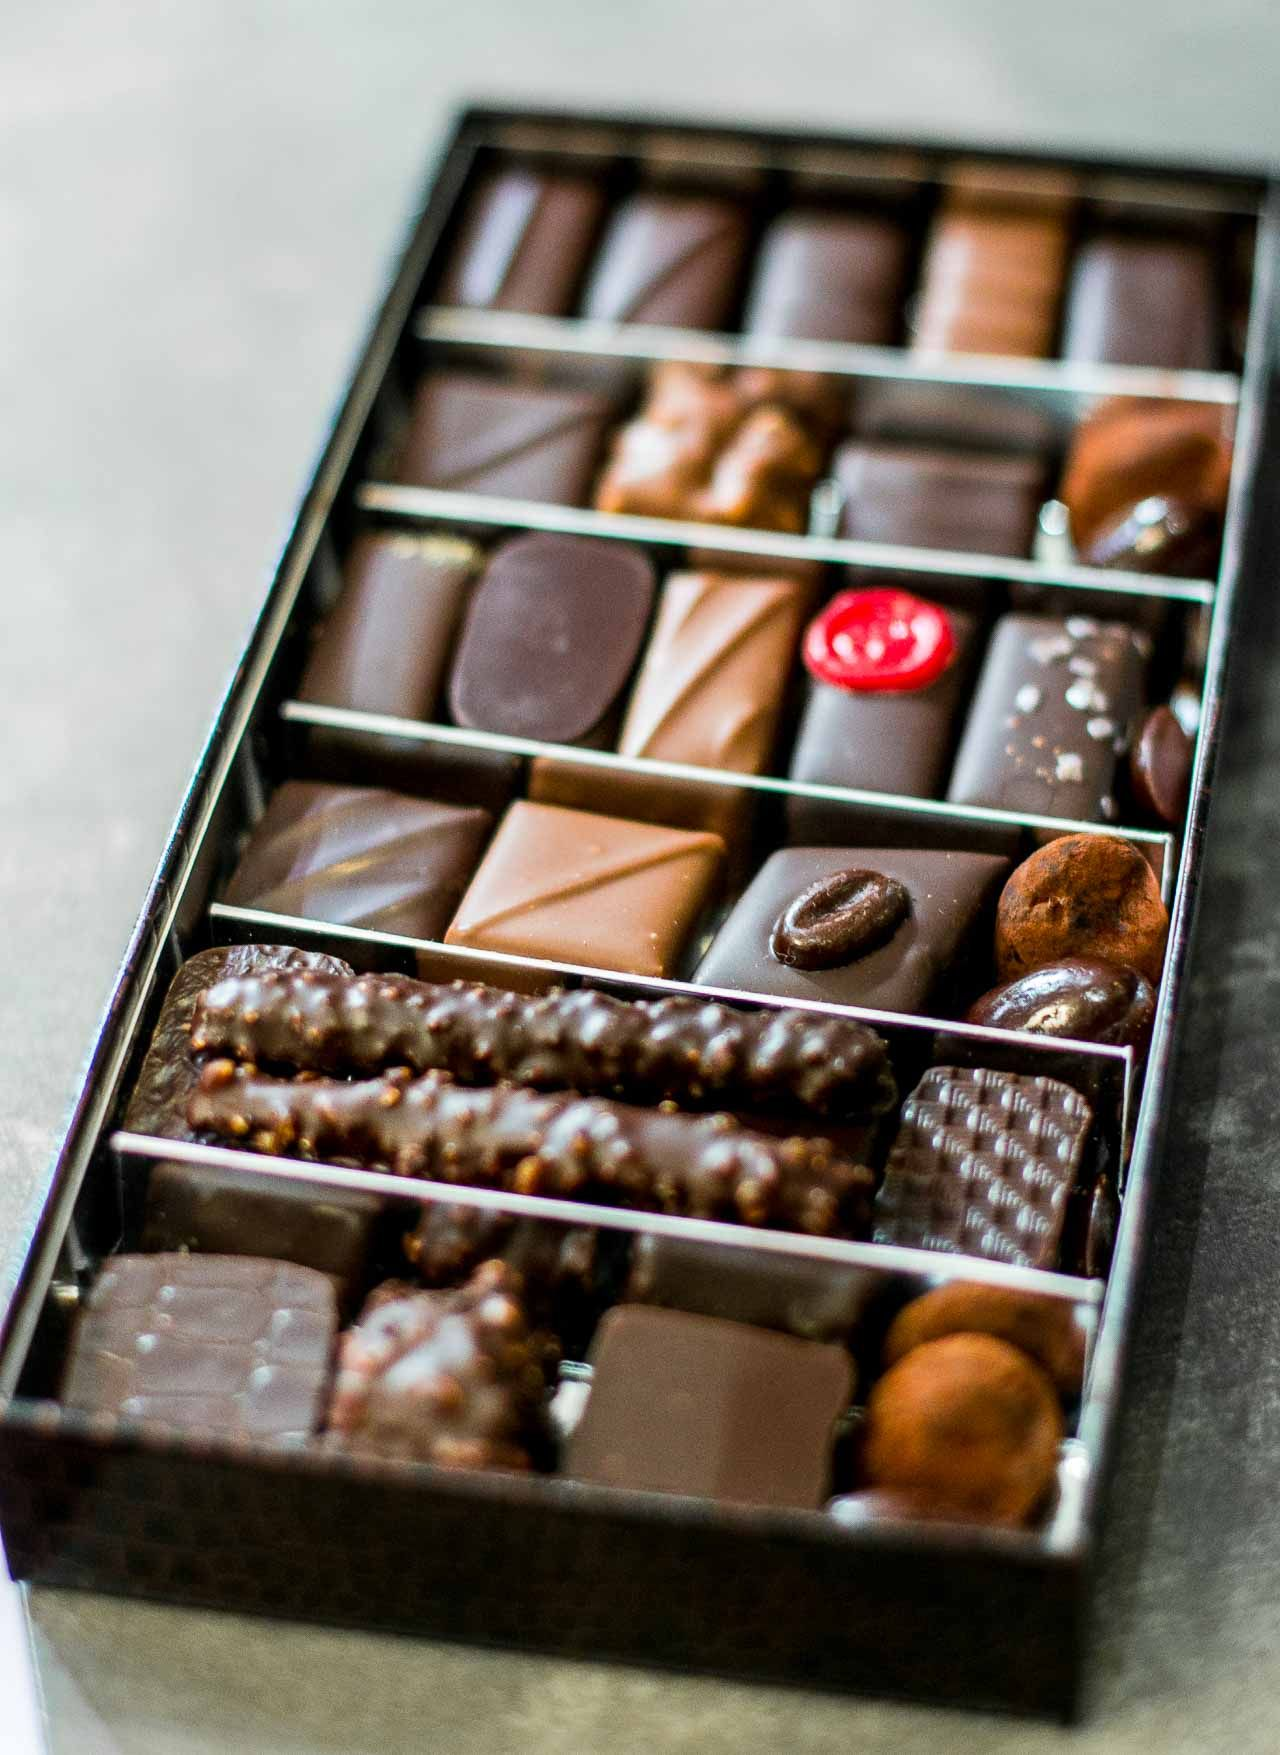 Paris chocolate shop | Chocolate shop, French chocolate and Chocolate